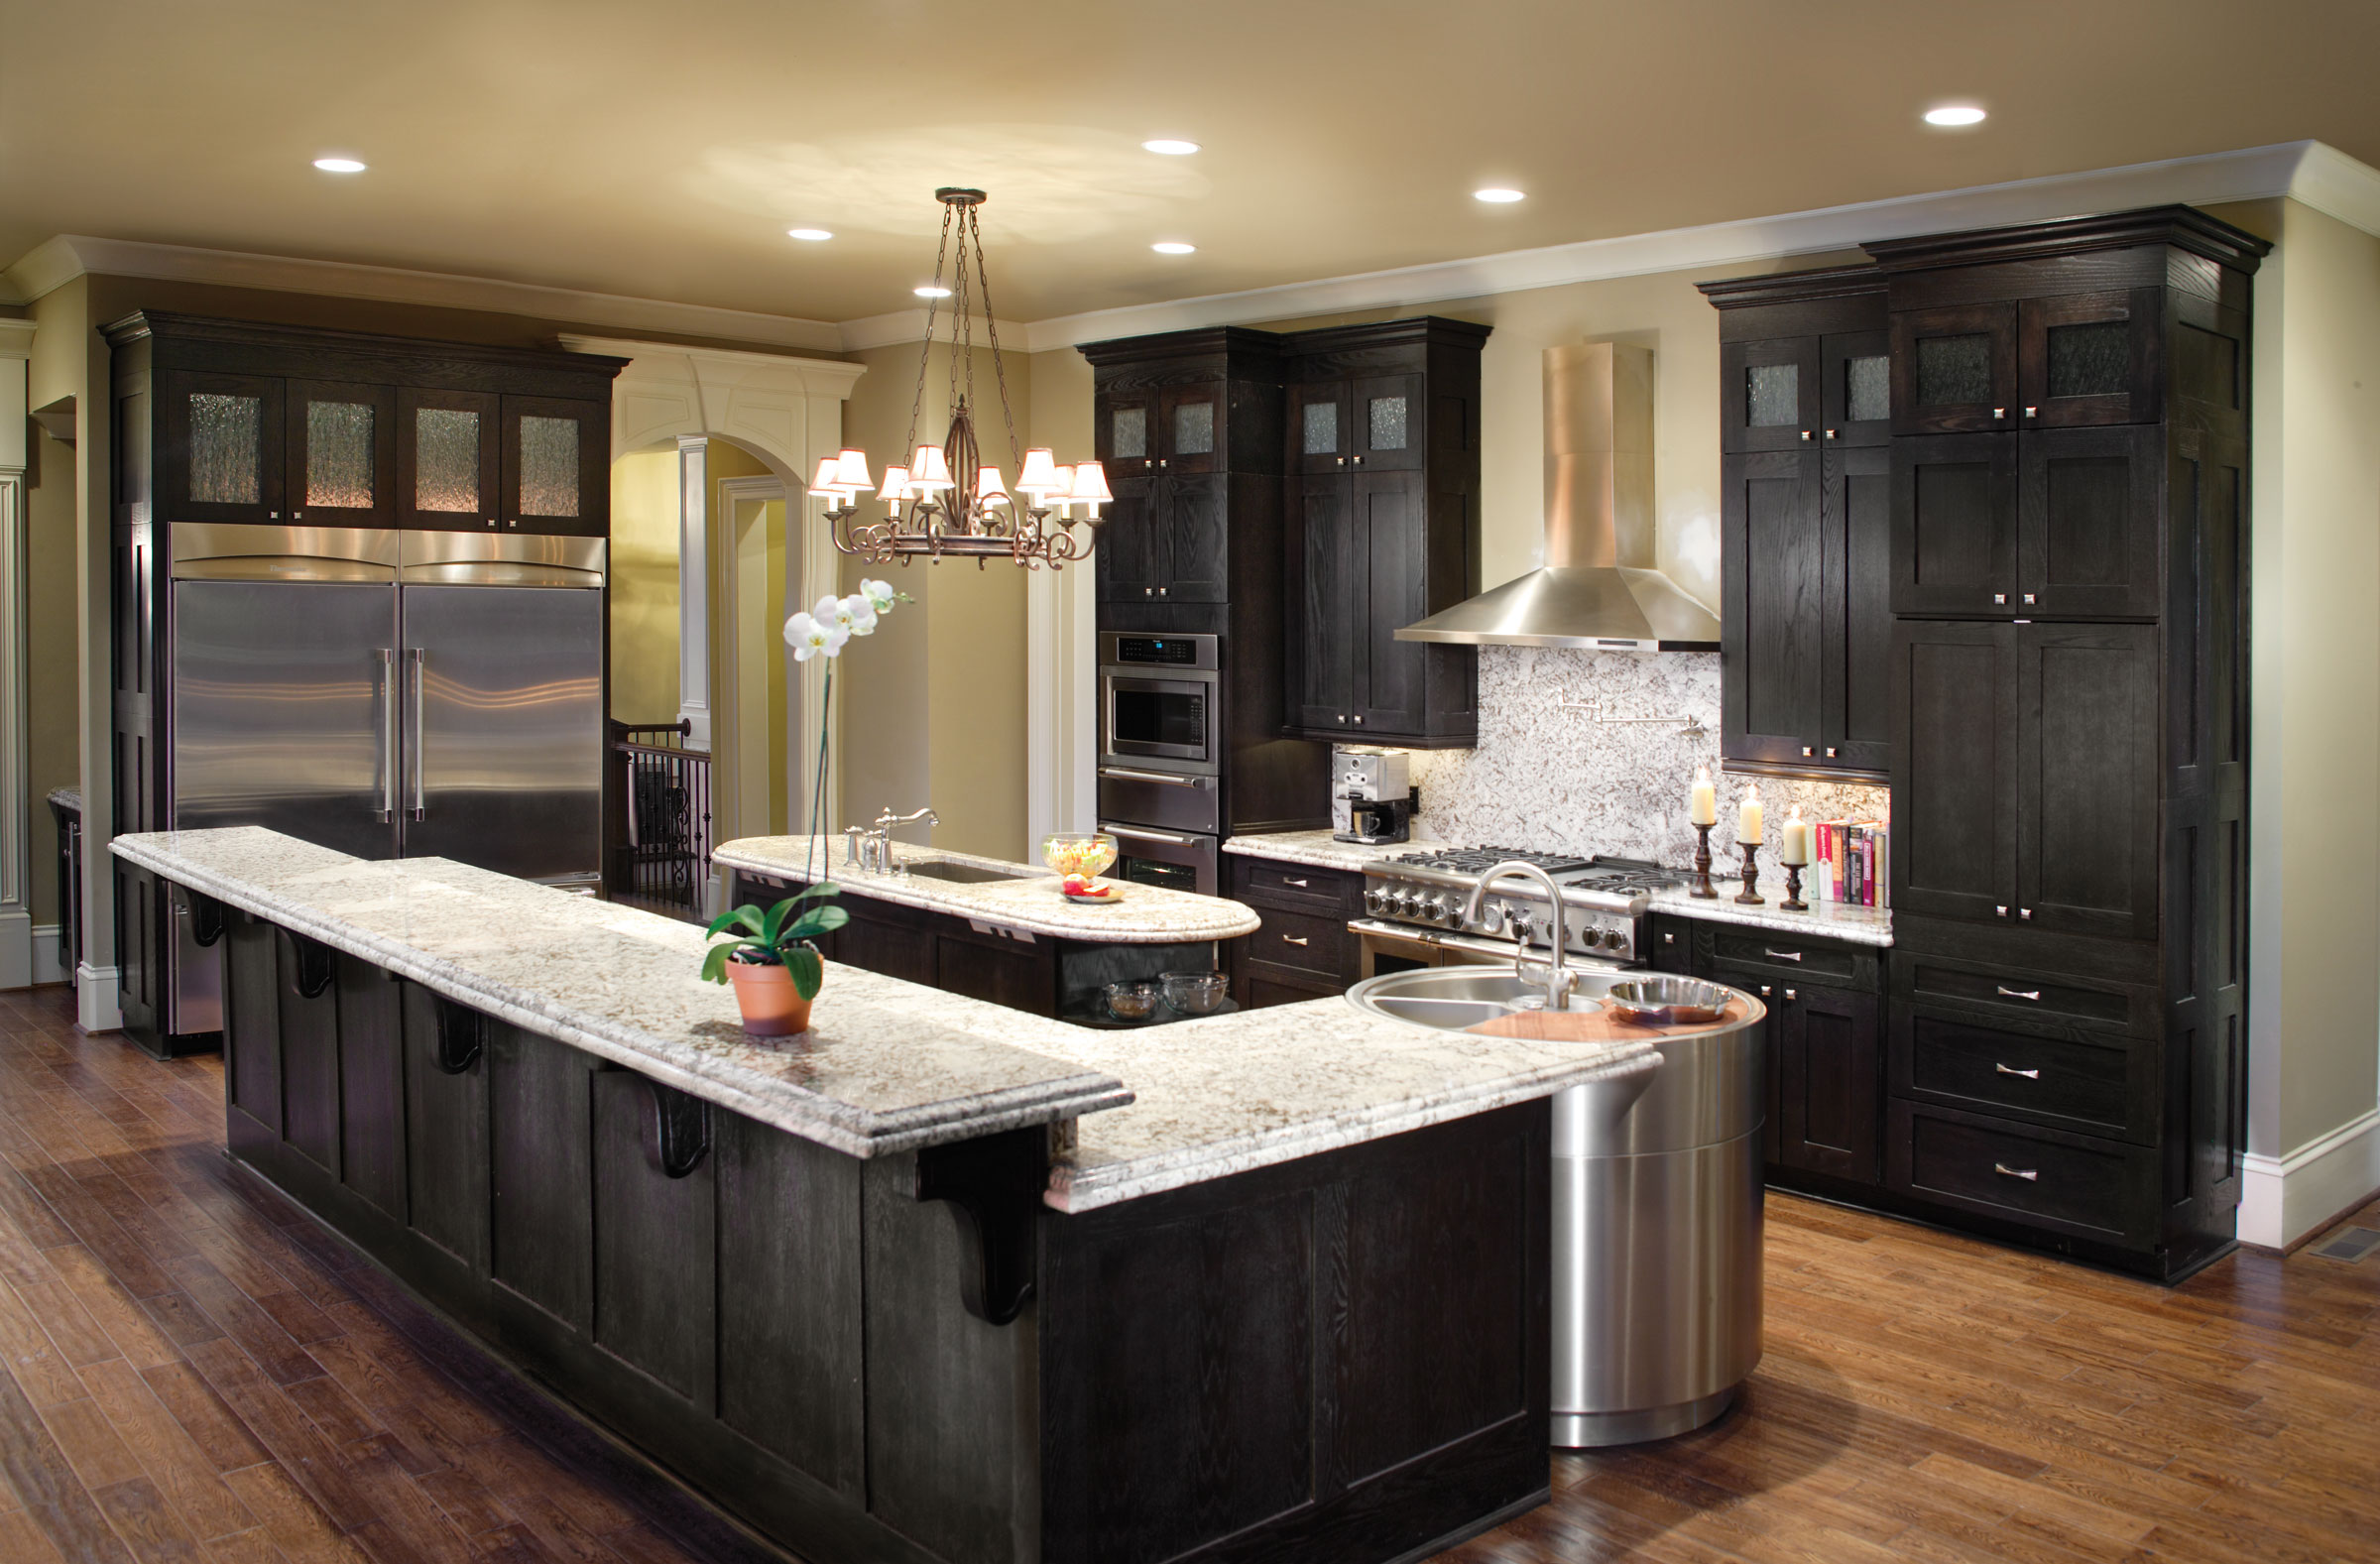 cabinetsbydesignaz kitchen remodeling phoenix az Custom Kitchen Bathroom Cabinets Company in Phoenix AZ Cabinet Maker